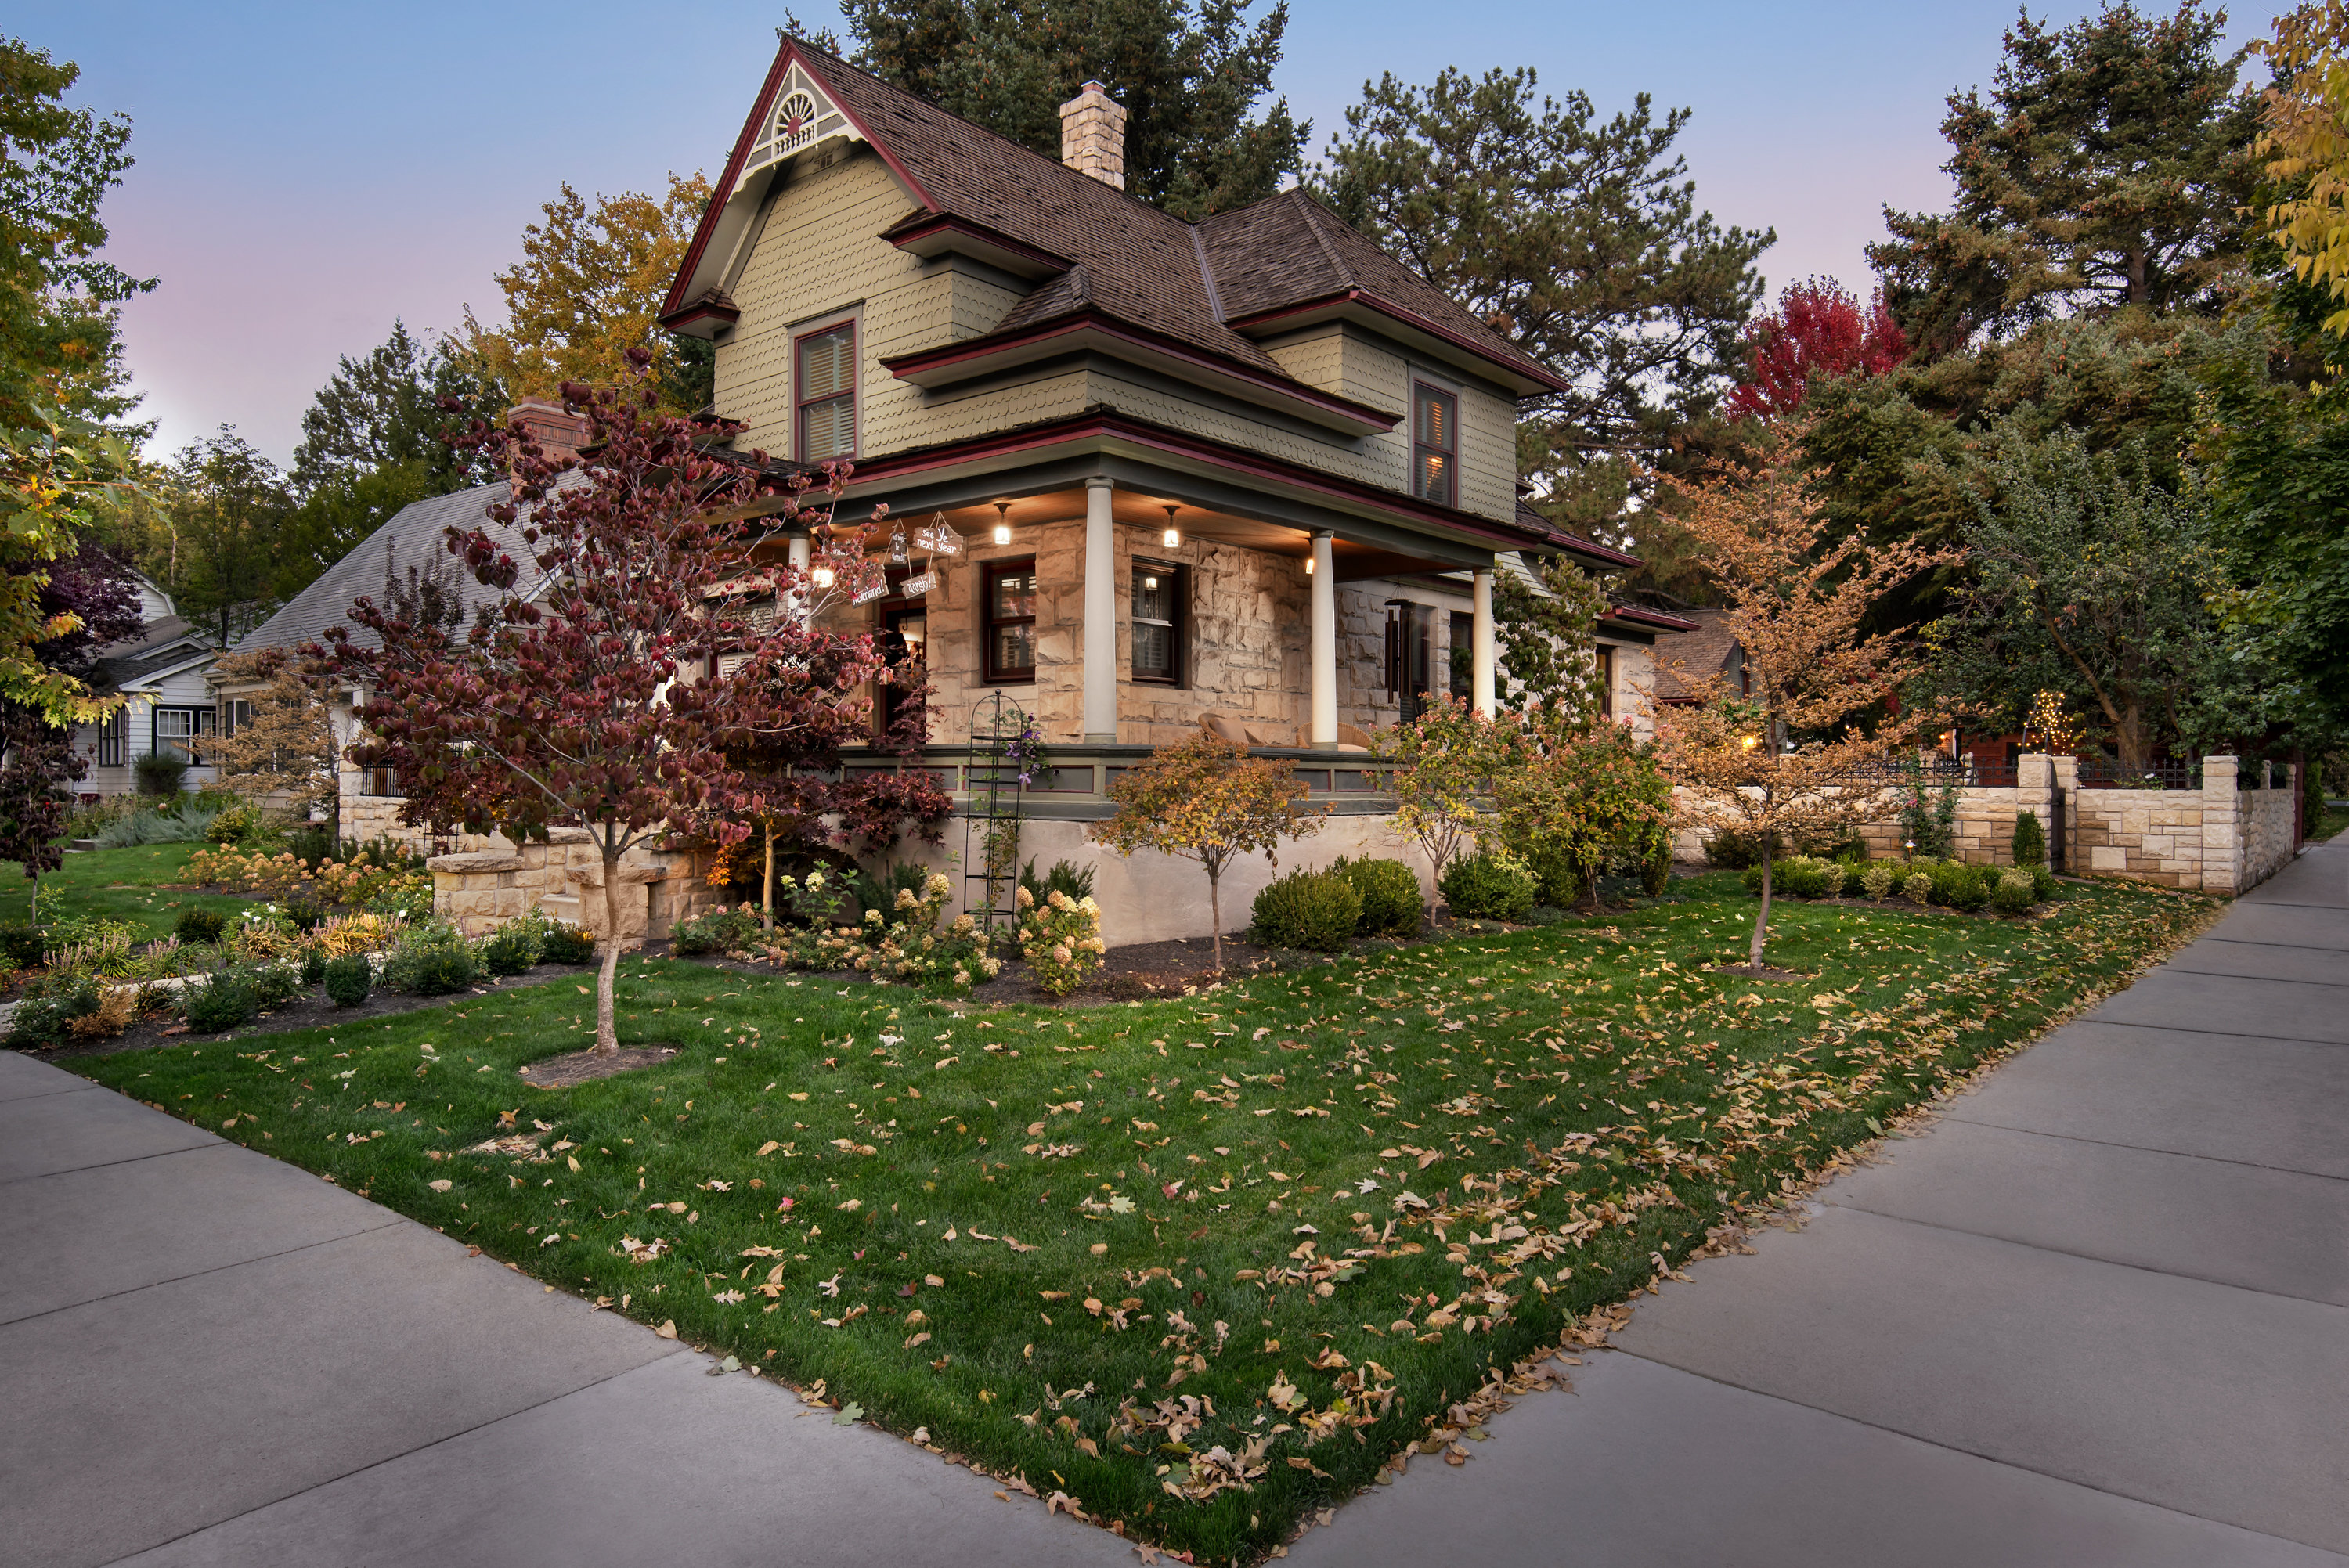 Historic Home and Custom Landscape | The Garden Artist Boise, ID